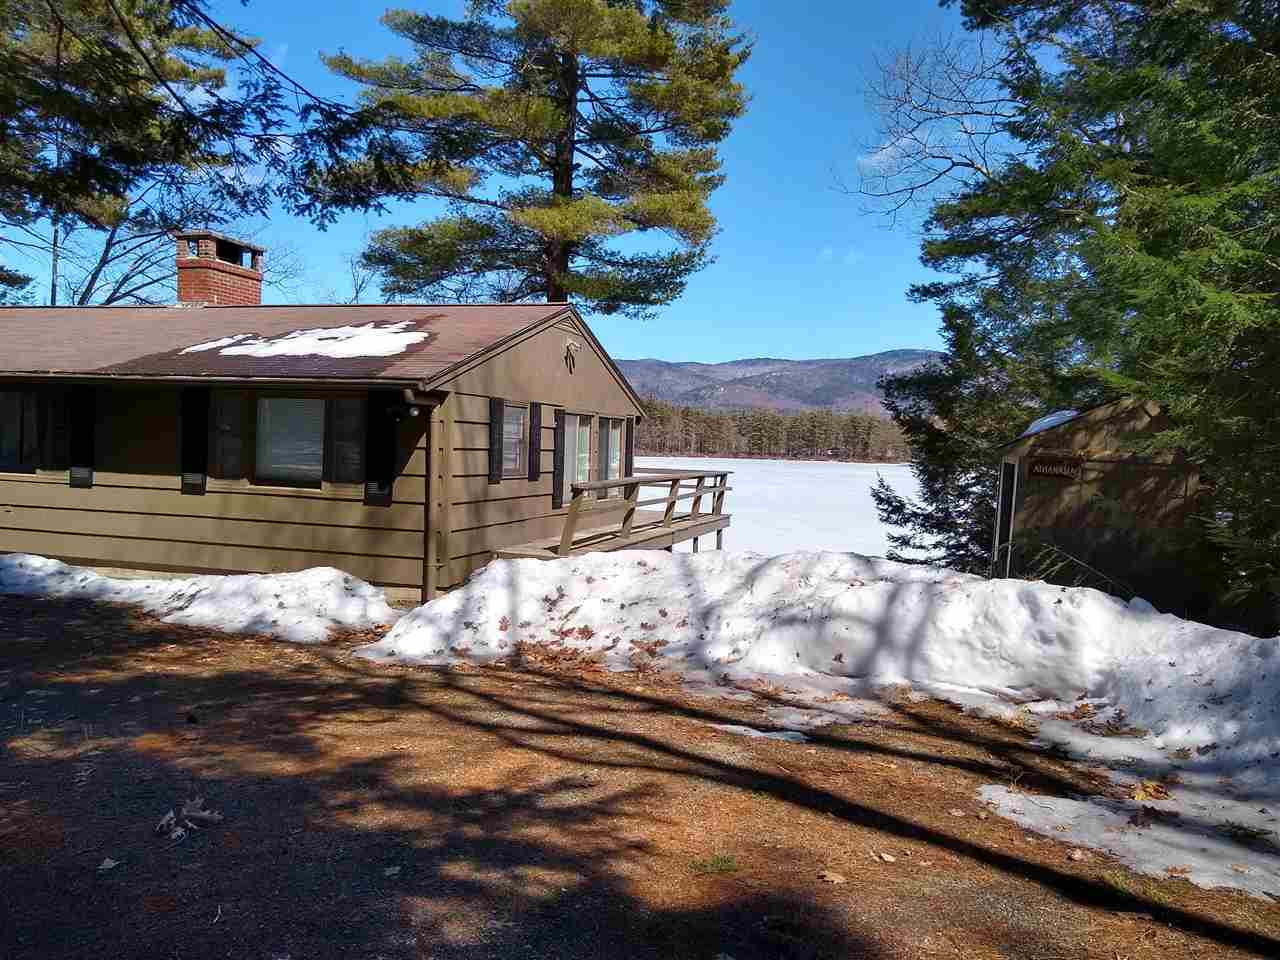 MLS 4738656: 33 Acorn Lane, Moultonborough NH